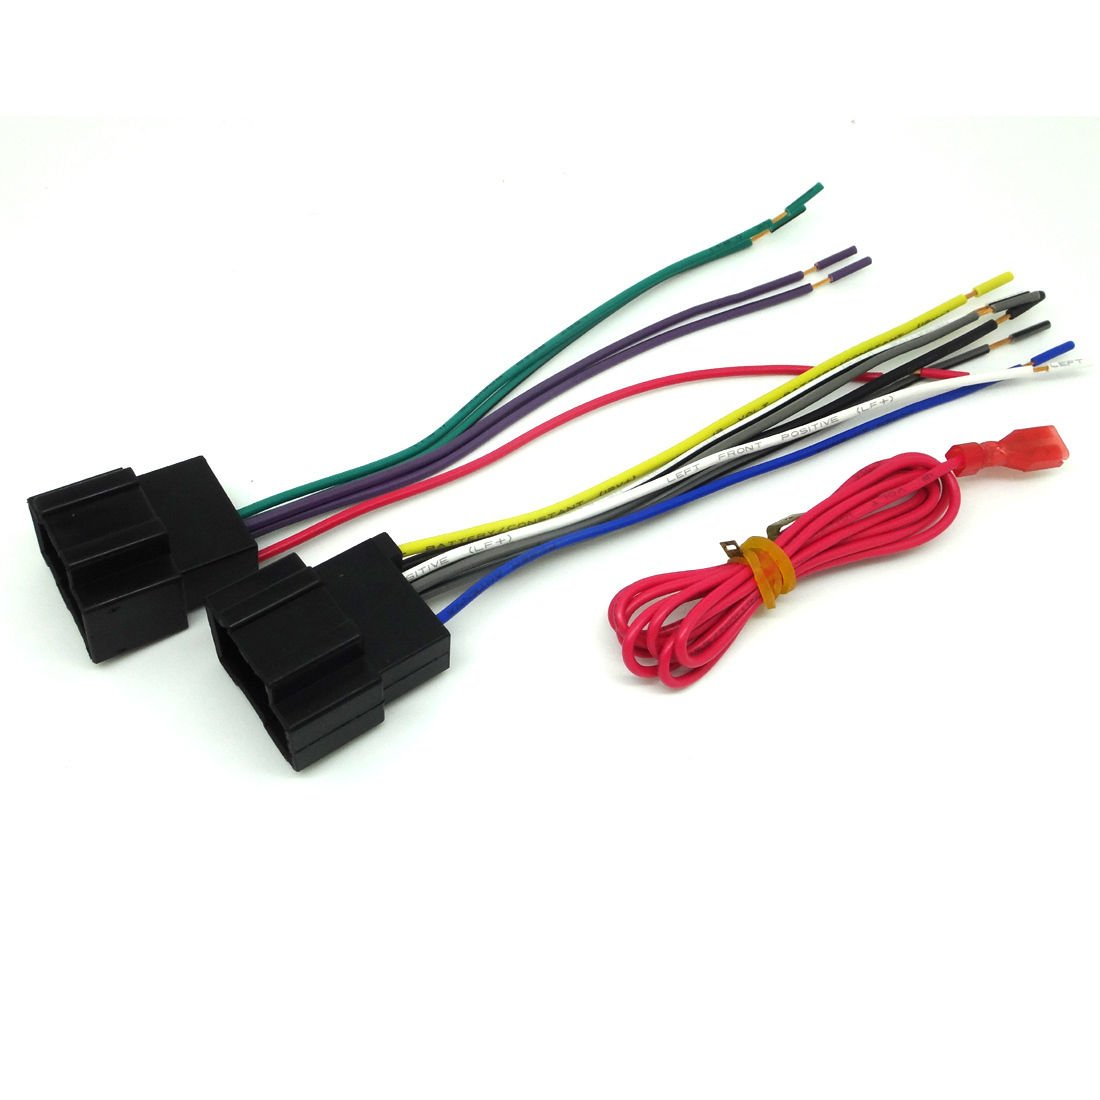 Amazon.com: GM CAR Stereo CD Player Wiring Harness Wire AFTERMARKET Radio  Install Plug 2007-2011 GMC Sierra 1500 SK2105-11: Car ElectronicsAmazon.com